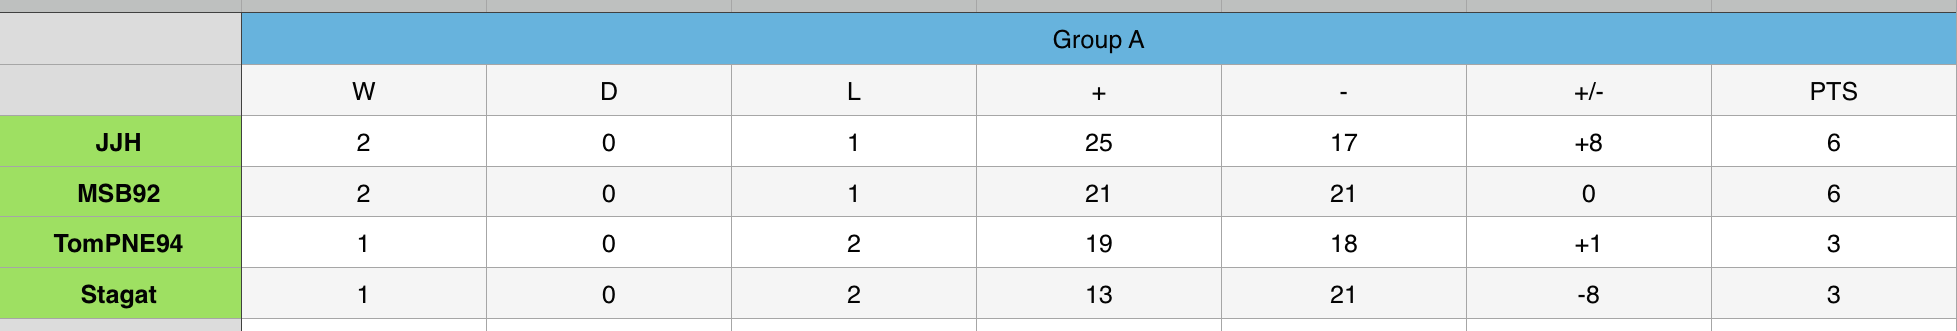 Group A 3.png